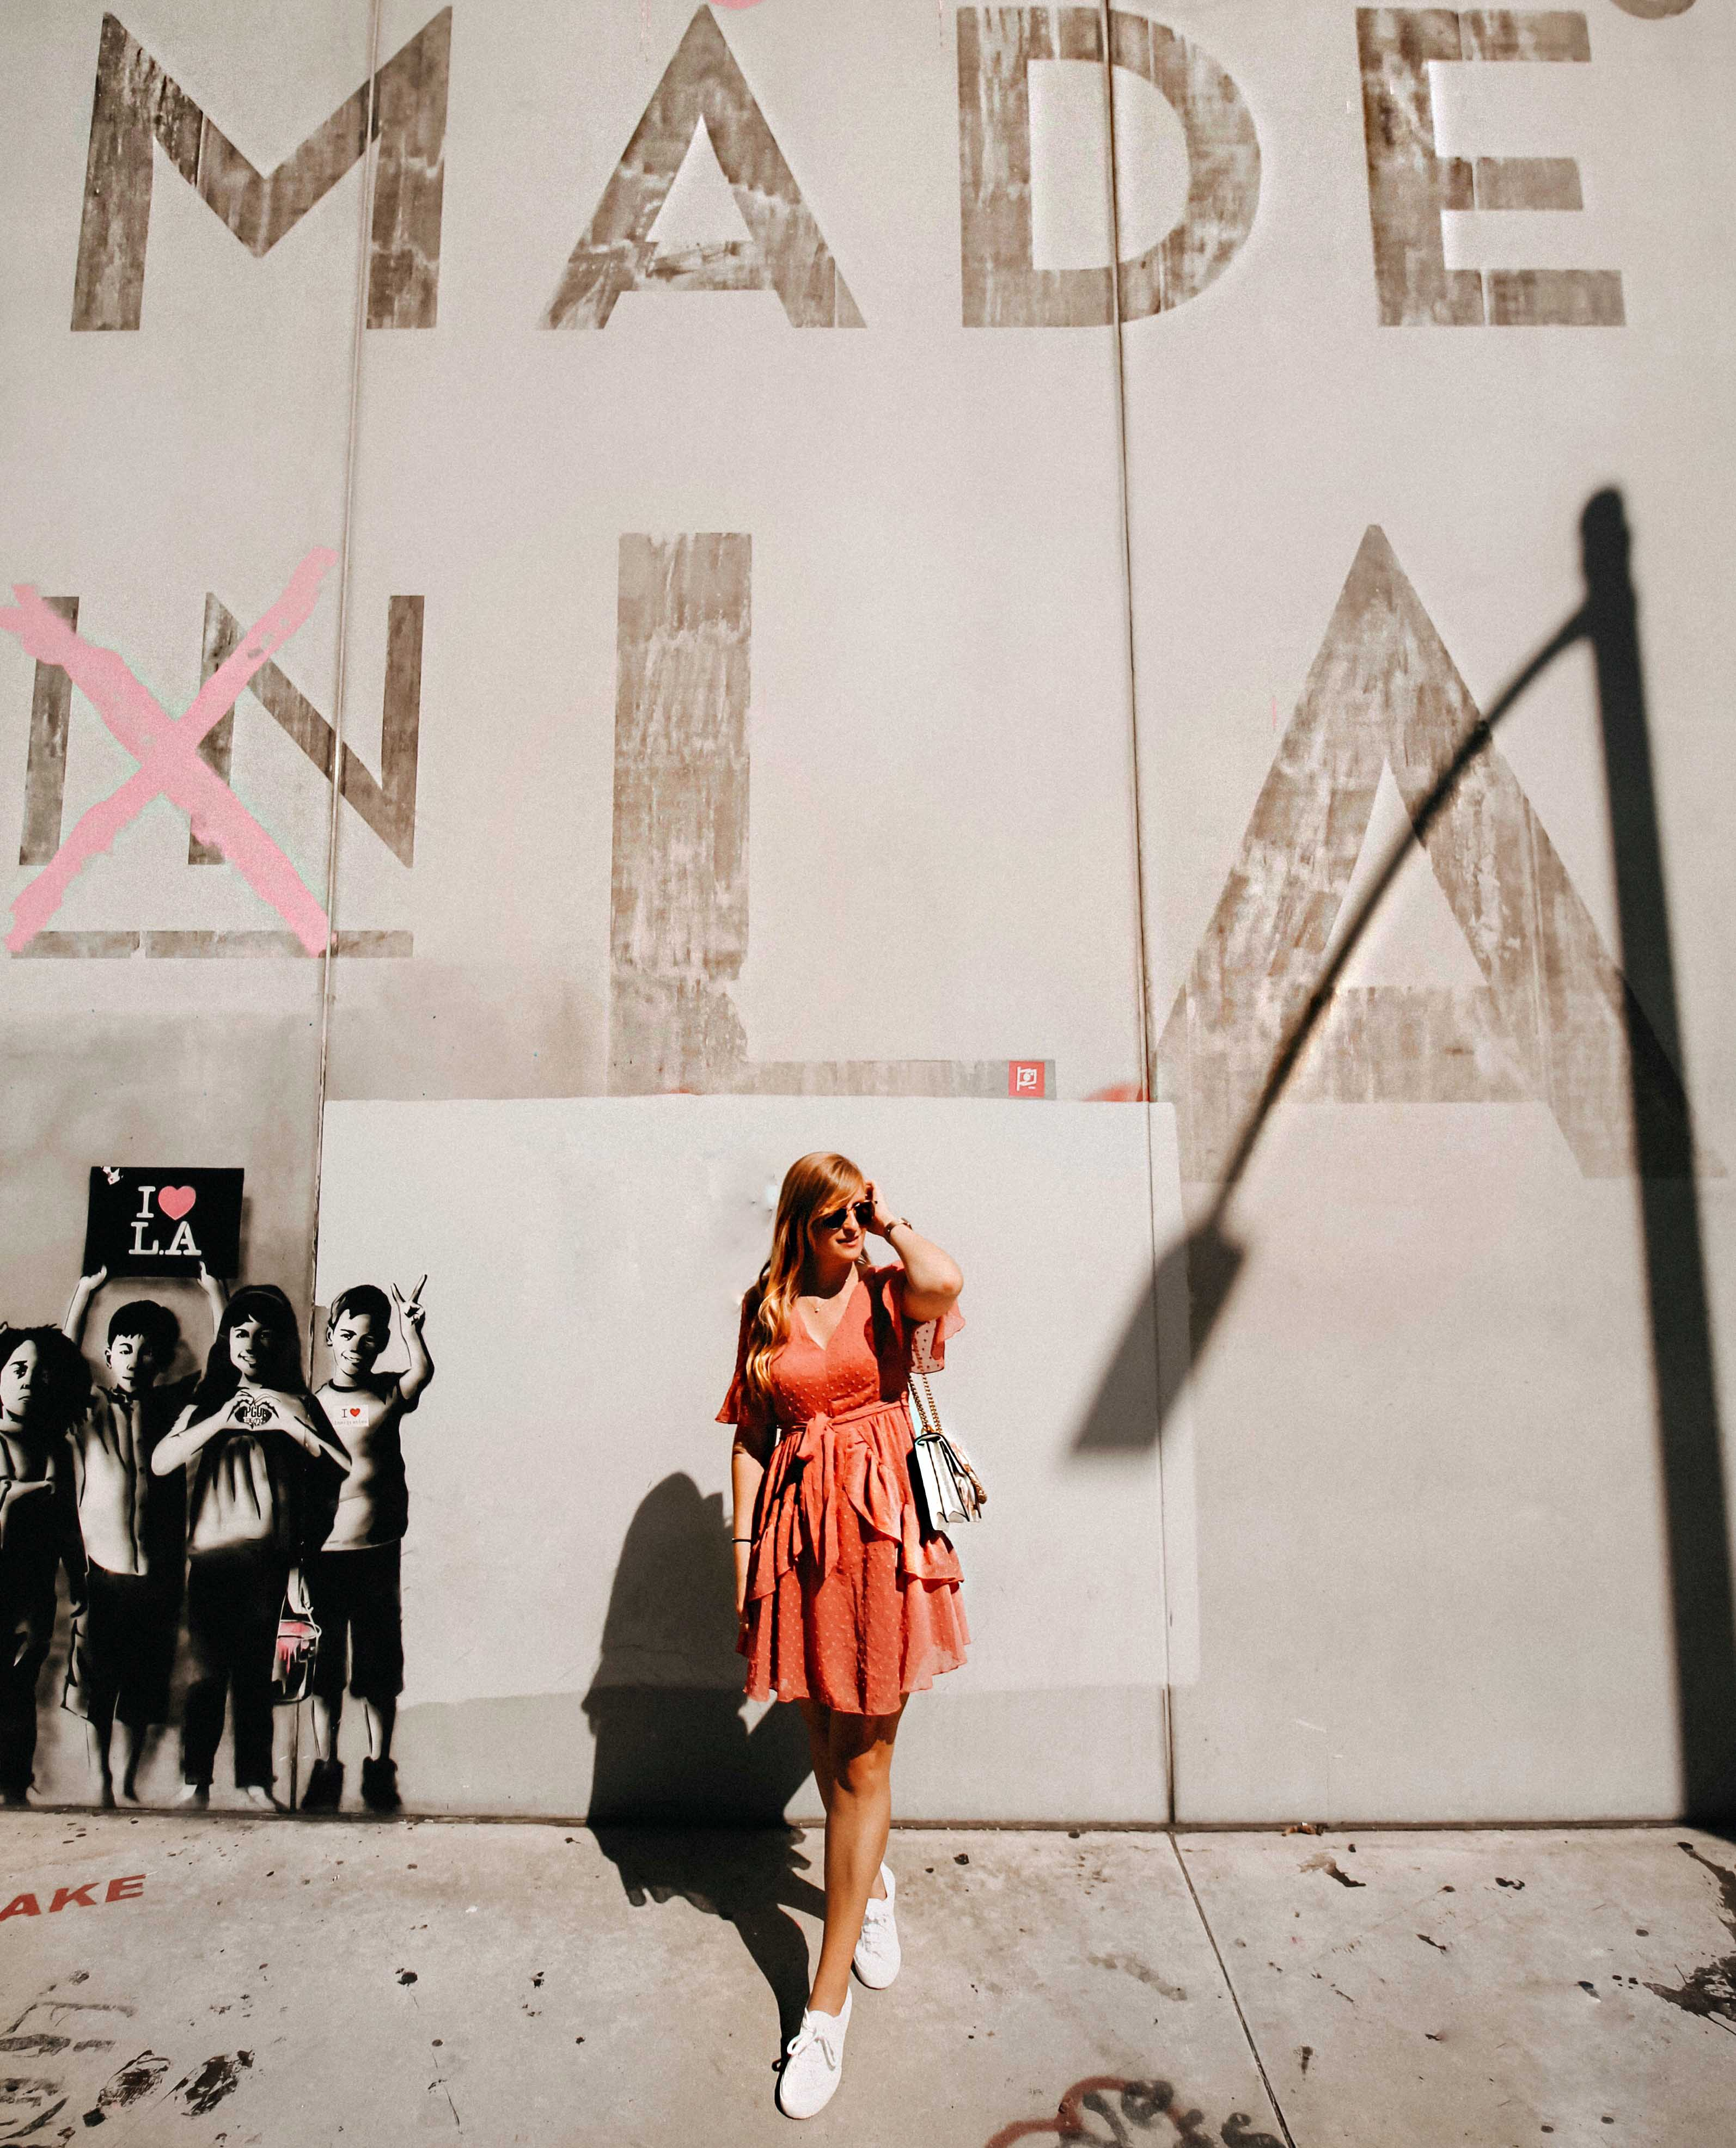 Top Insider Tipps Los Angeles Melrose Avenue Graffiti Wand Mde in LA Instagram Spots Reiseblog